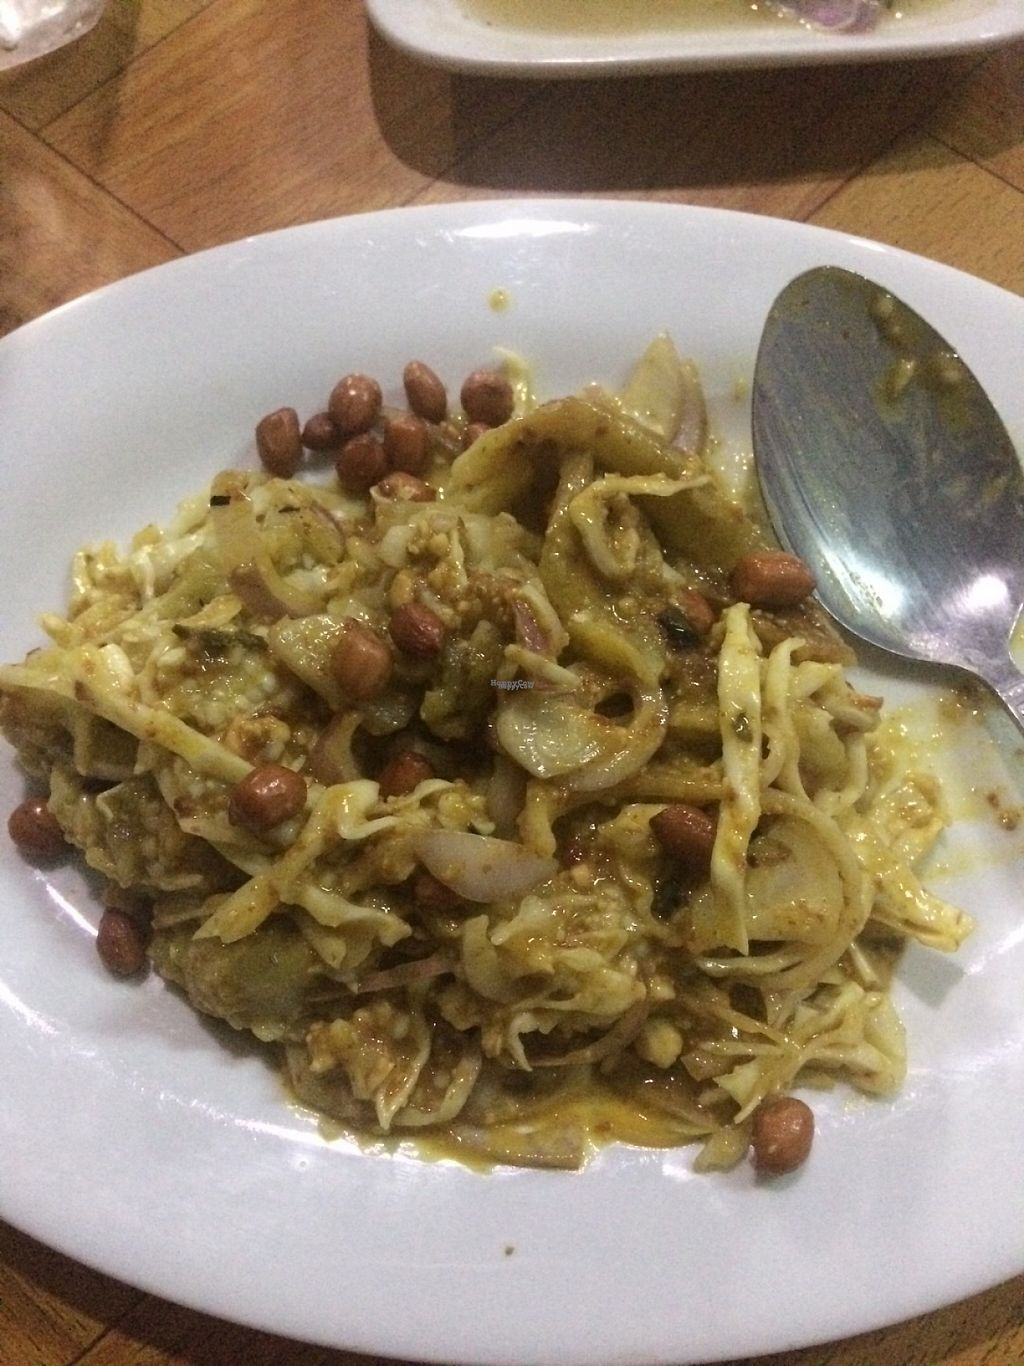 """Photo of Moe Pyae San Vegetarian Restaurant  by <a href=""""/members/profile/Cyclinggal"""">Cyclinggal</a> <br/>Special aubergines salad  <br/> March 29, 2017  - <a href='/contact/abuse/image/67267/242379'>Report</a>"""